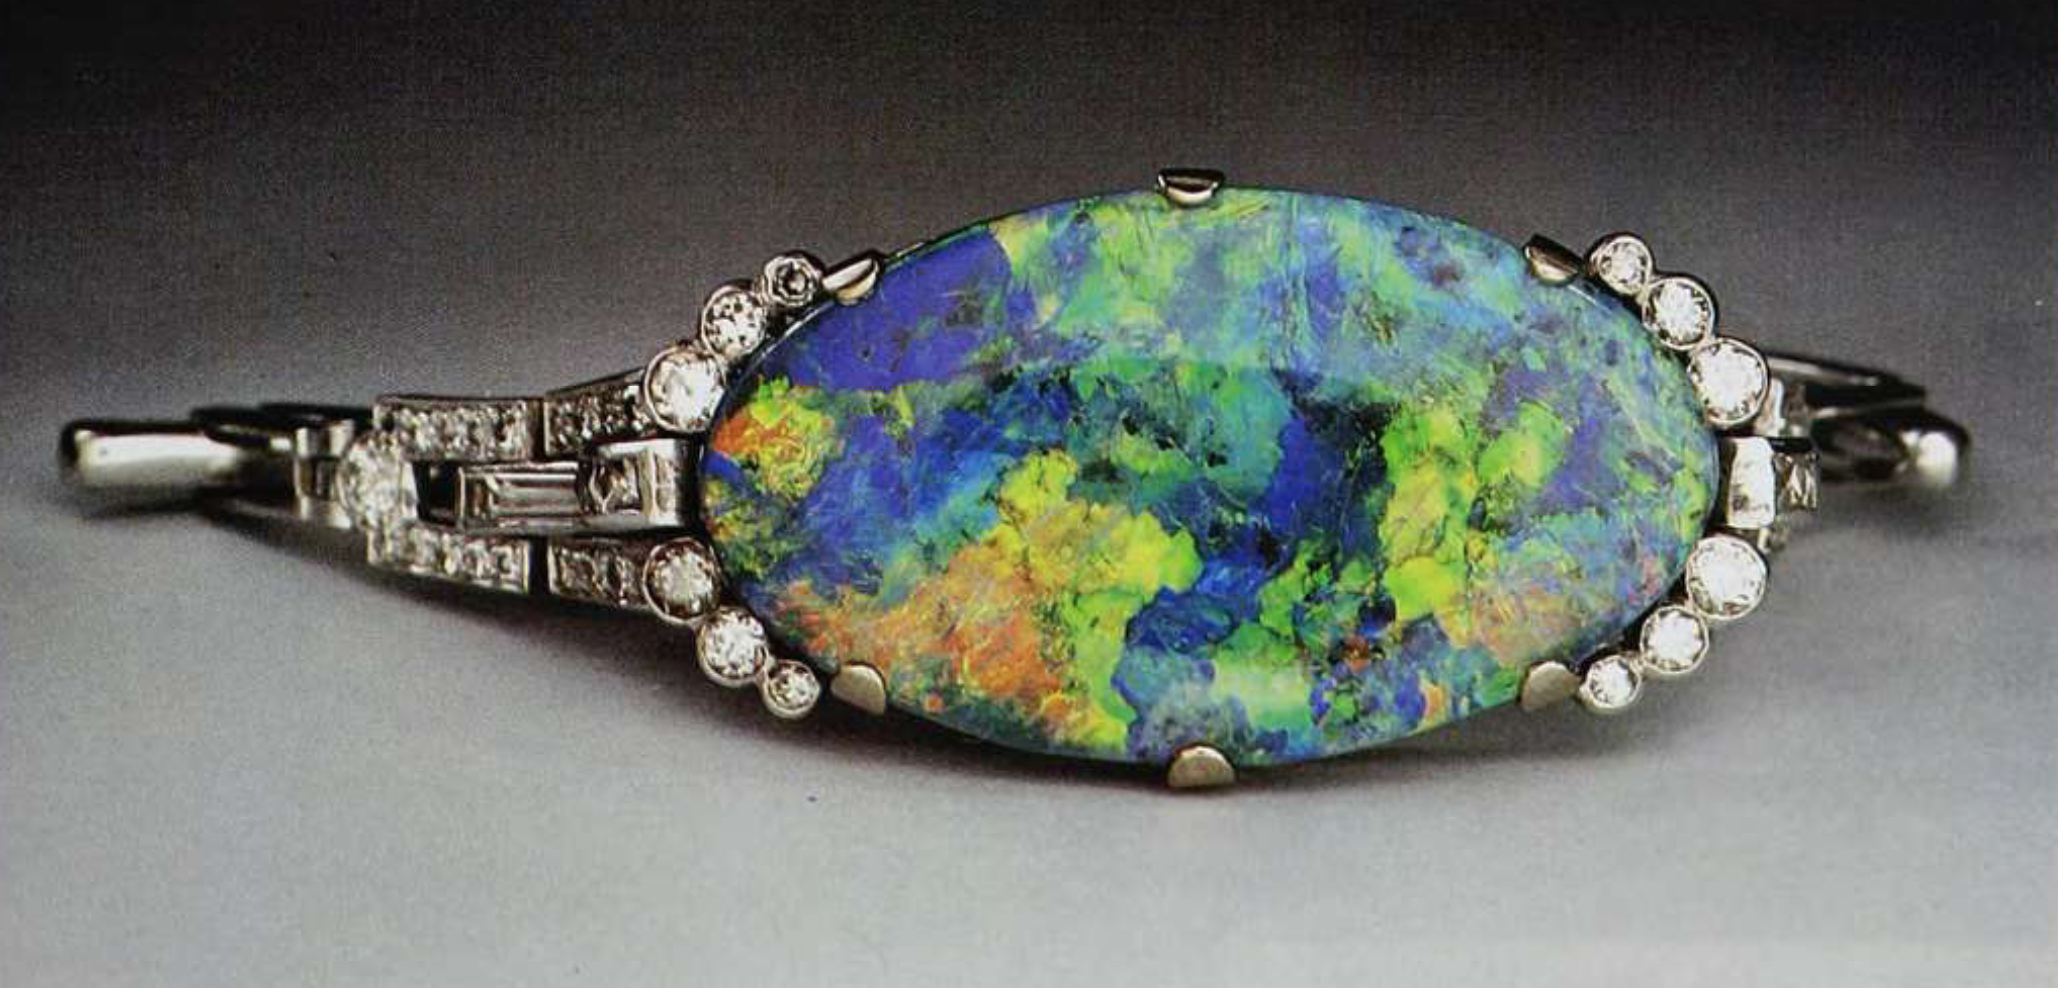 Buying Opal Jewelry Online